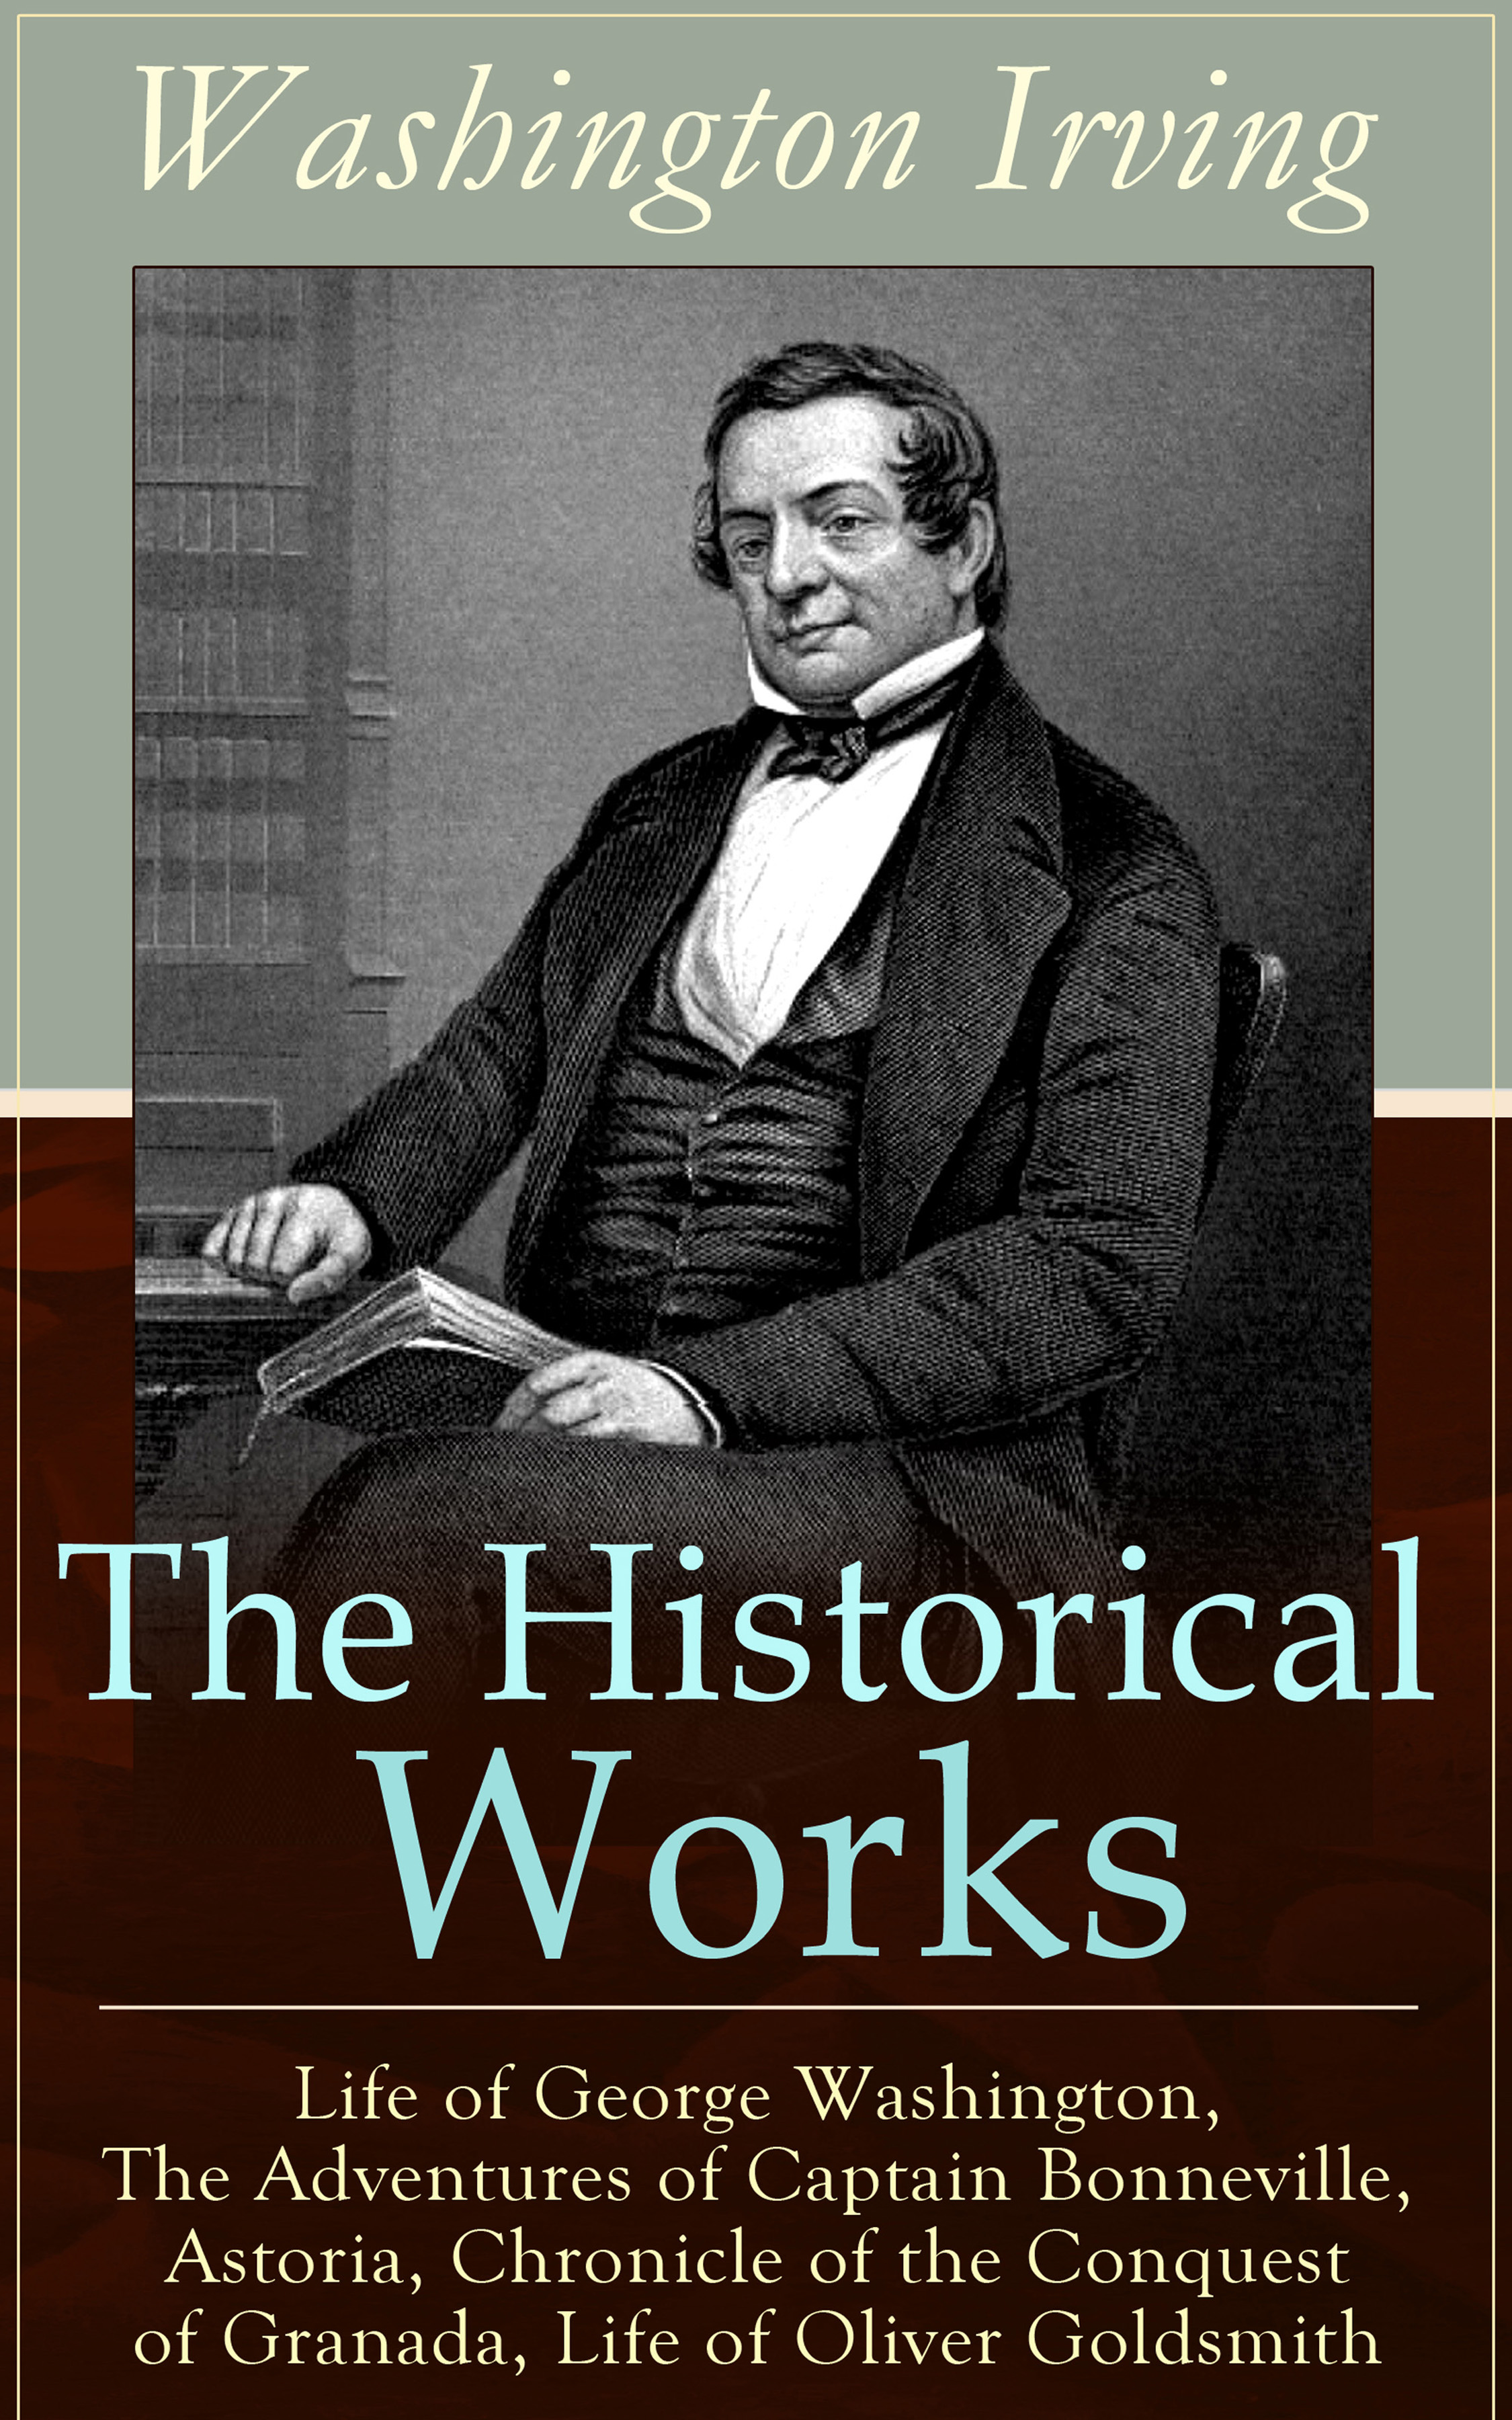 Washington Irving The Historical Works of Washington Irving: Life of George Washington, The Adventures of Captain Bonneville, Astoria, Chronicle of the Conquest of Granada, Life of Oliver Goldsmith